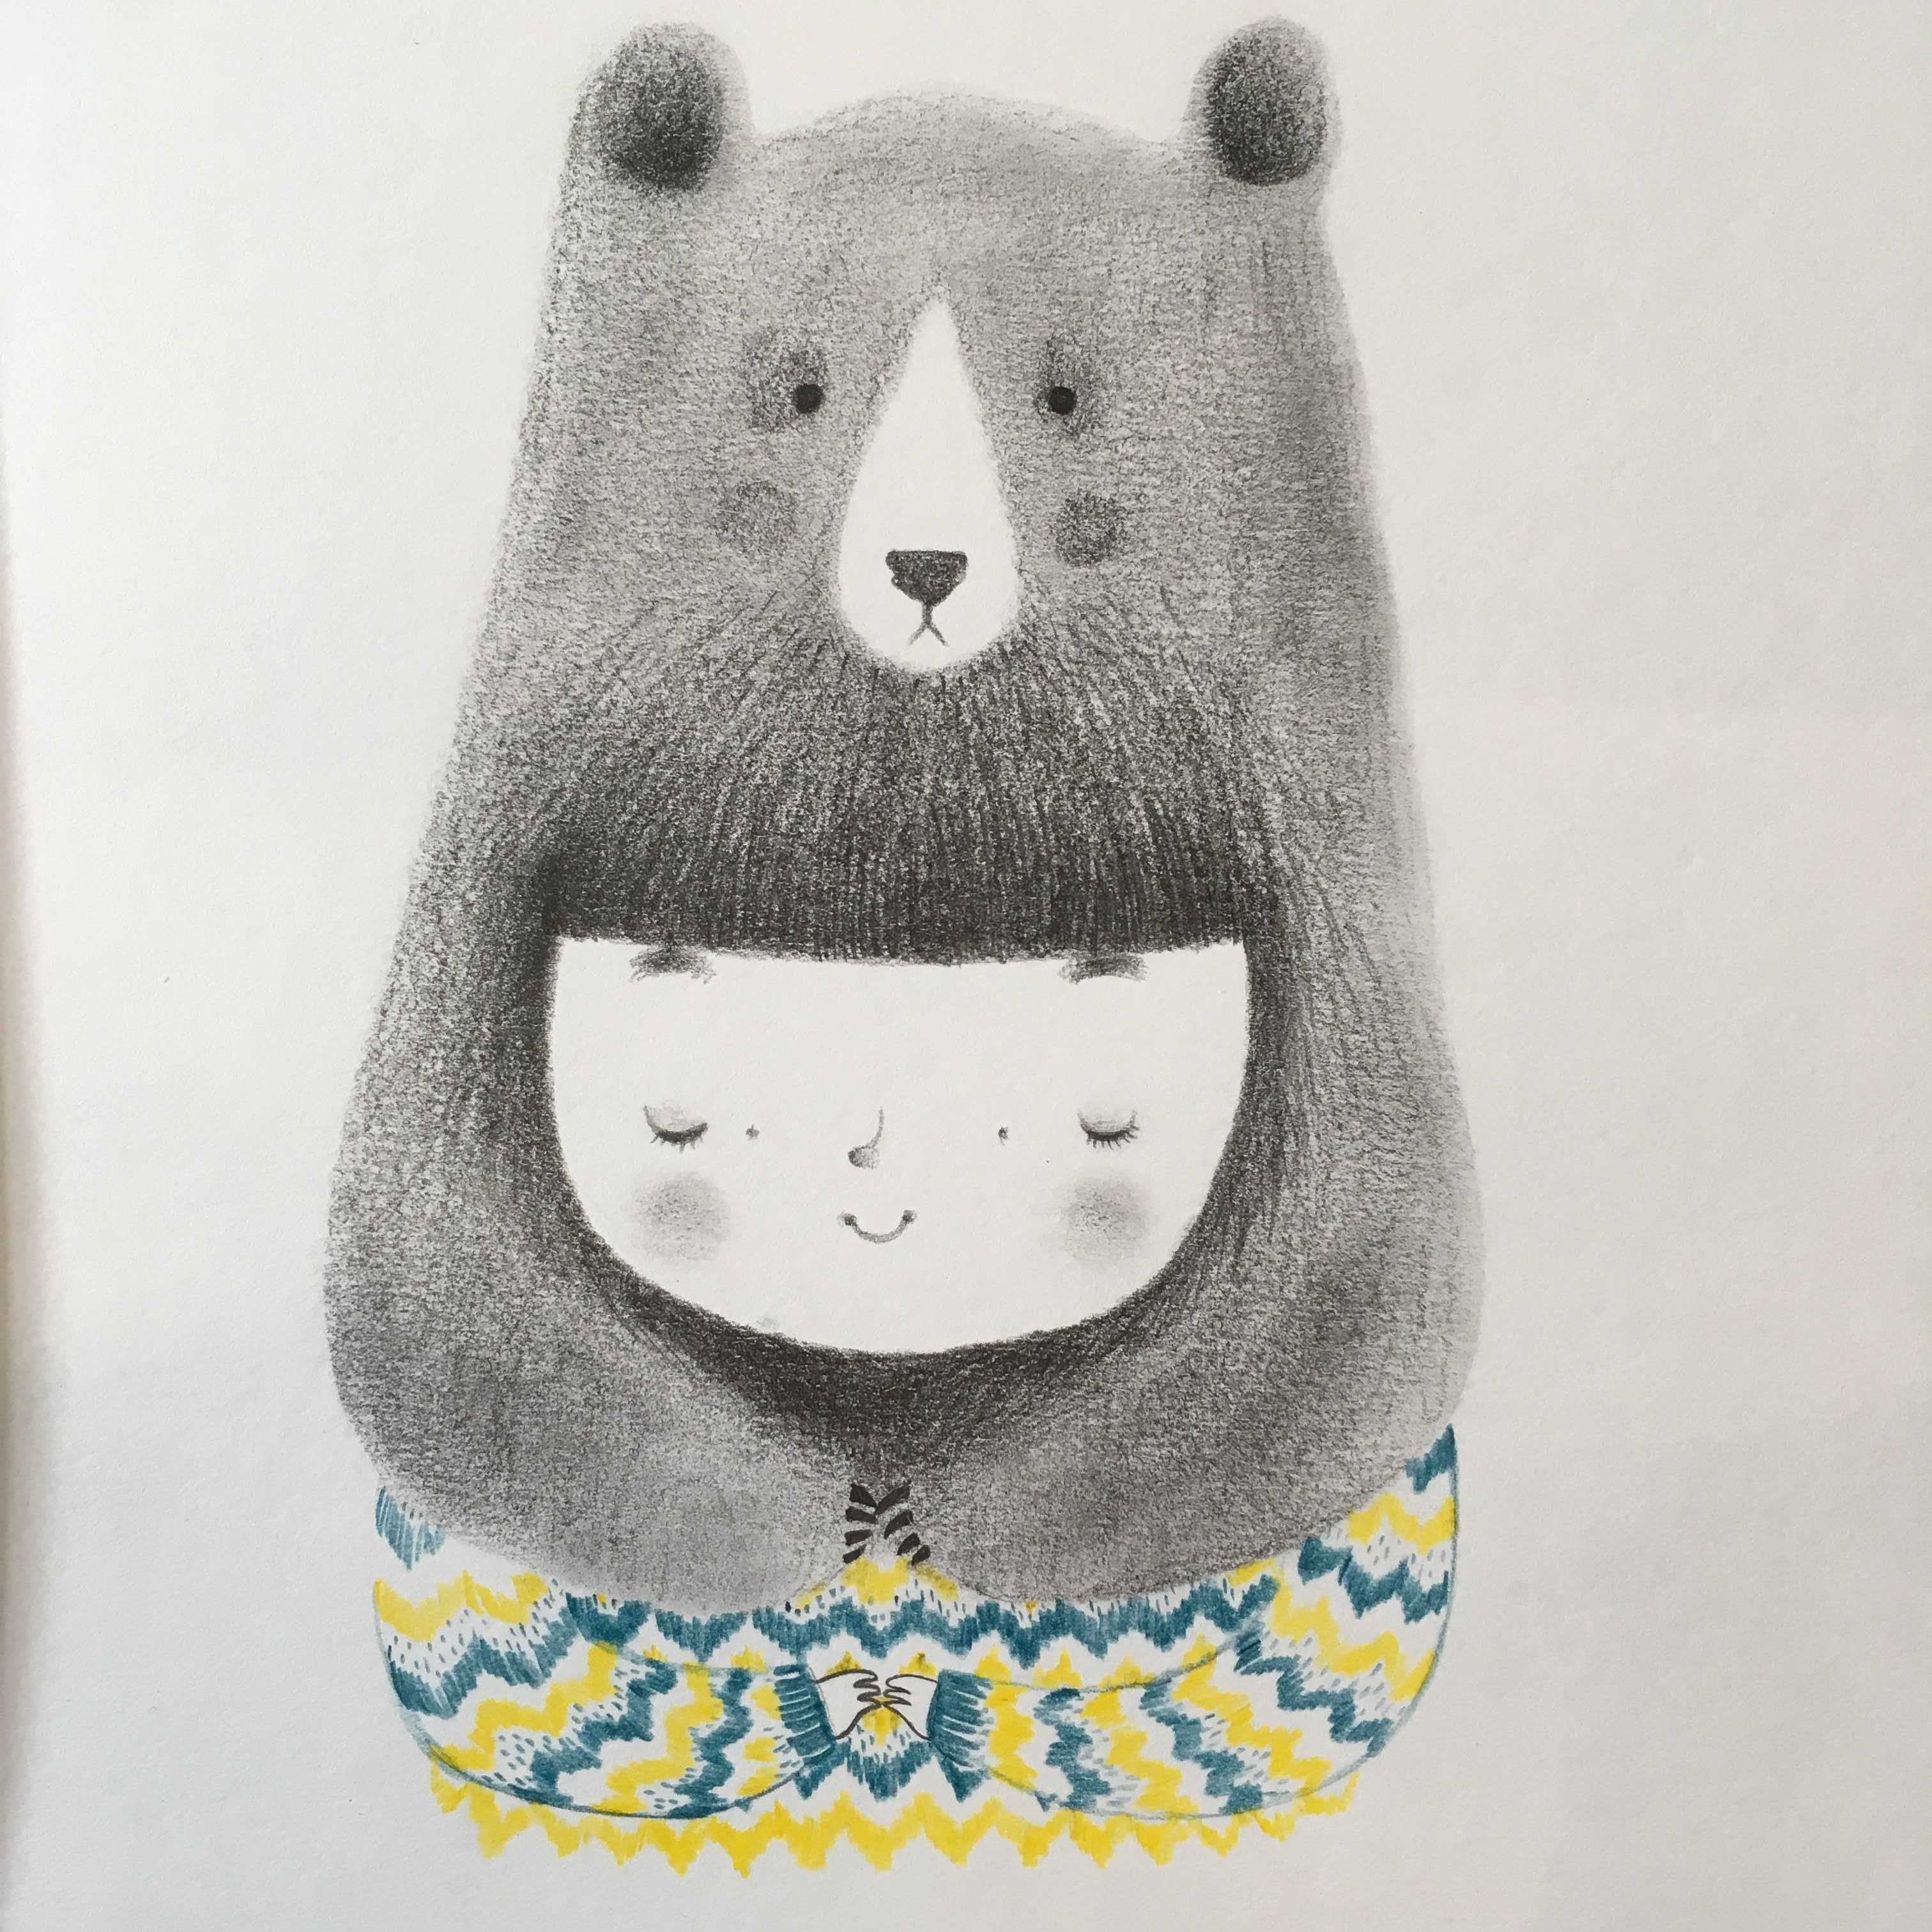 seforapons-illustration-graphite-colouredpencils-bear-girl-junkoebastian